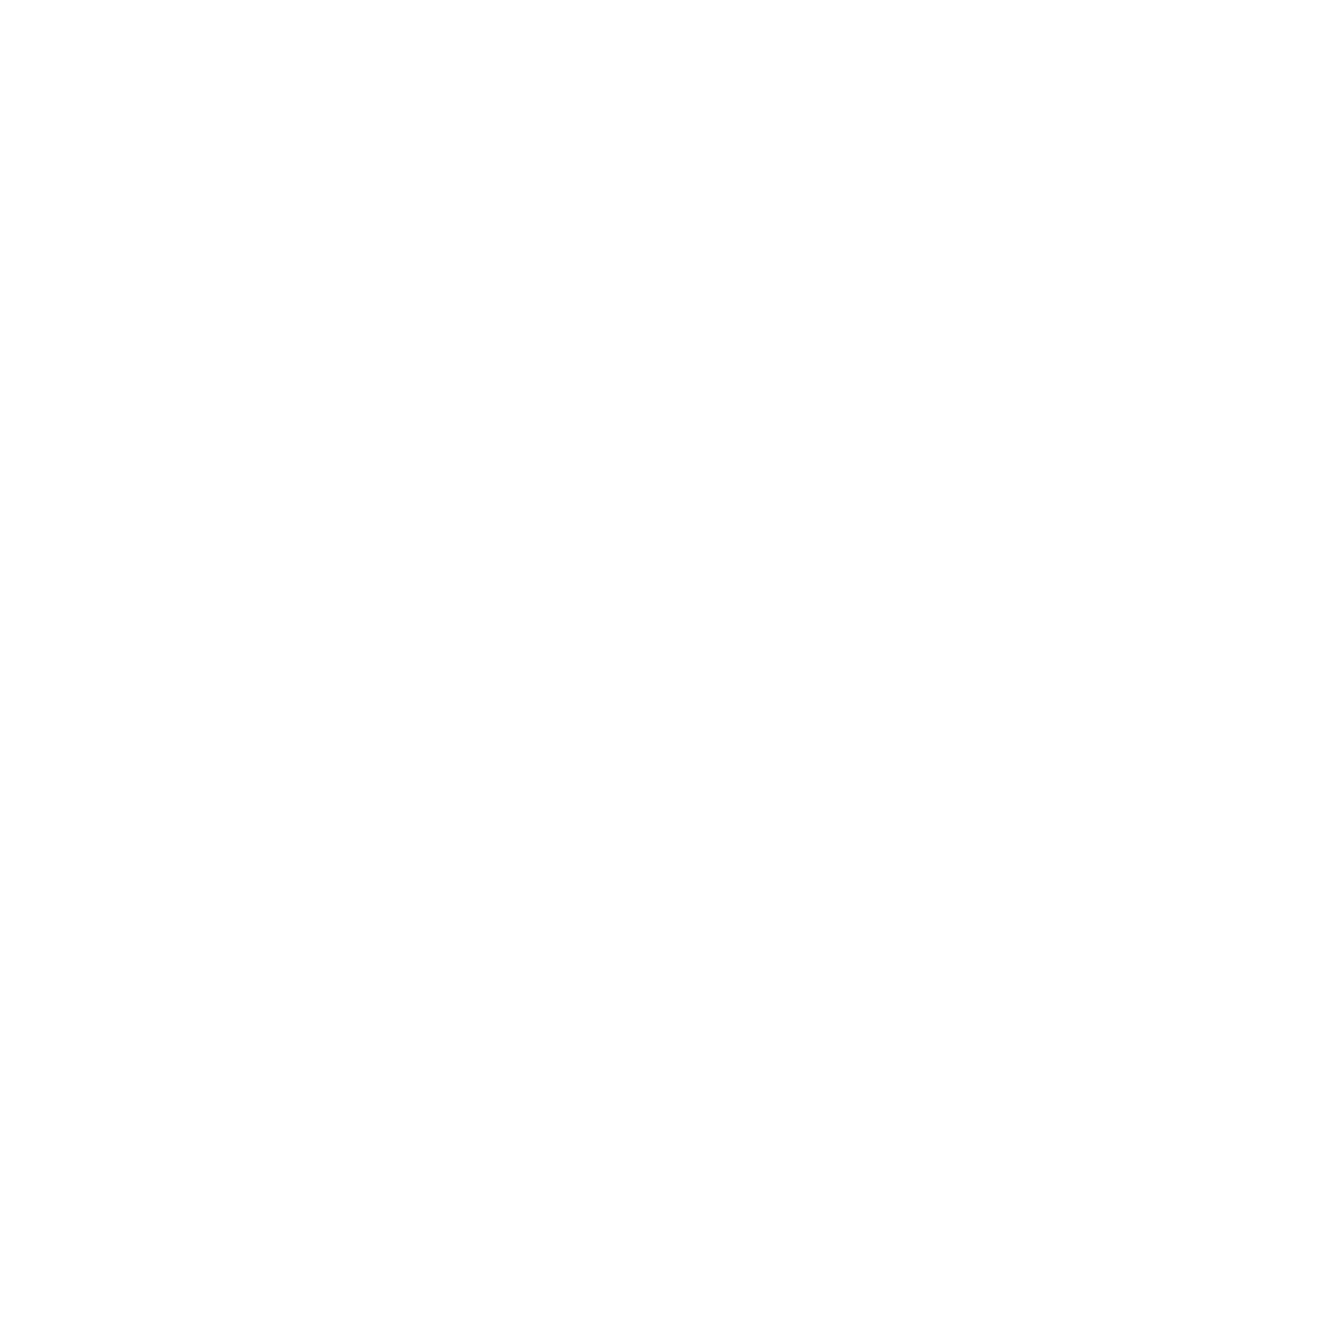 NACDL - white version